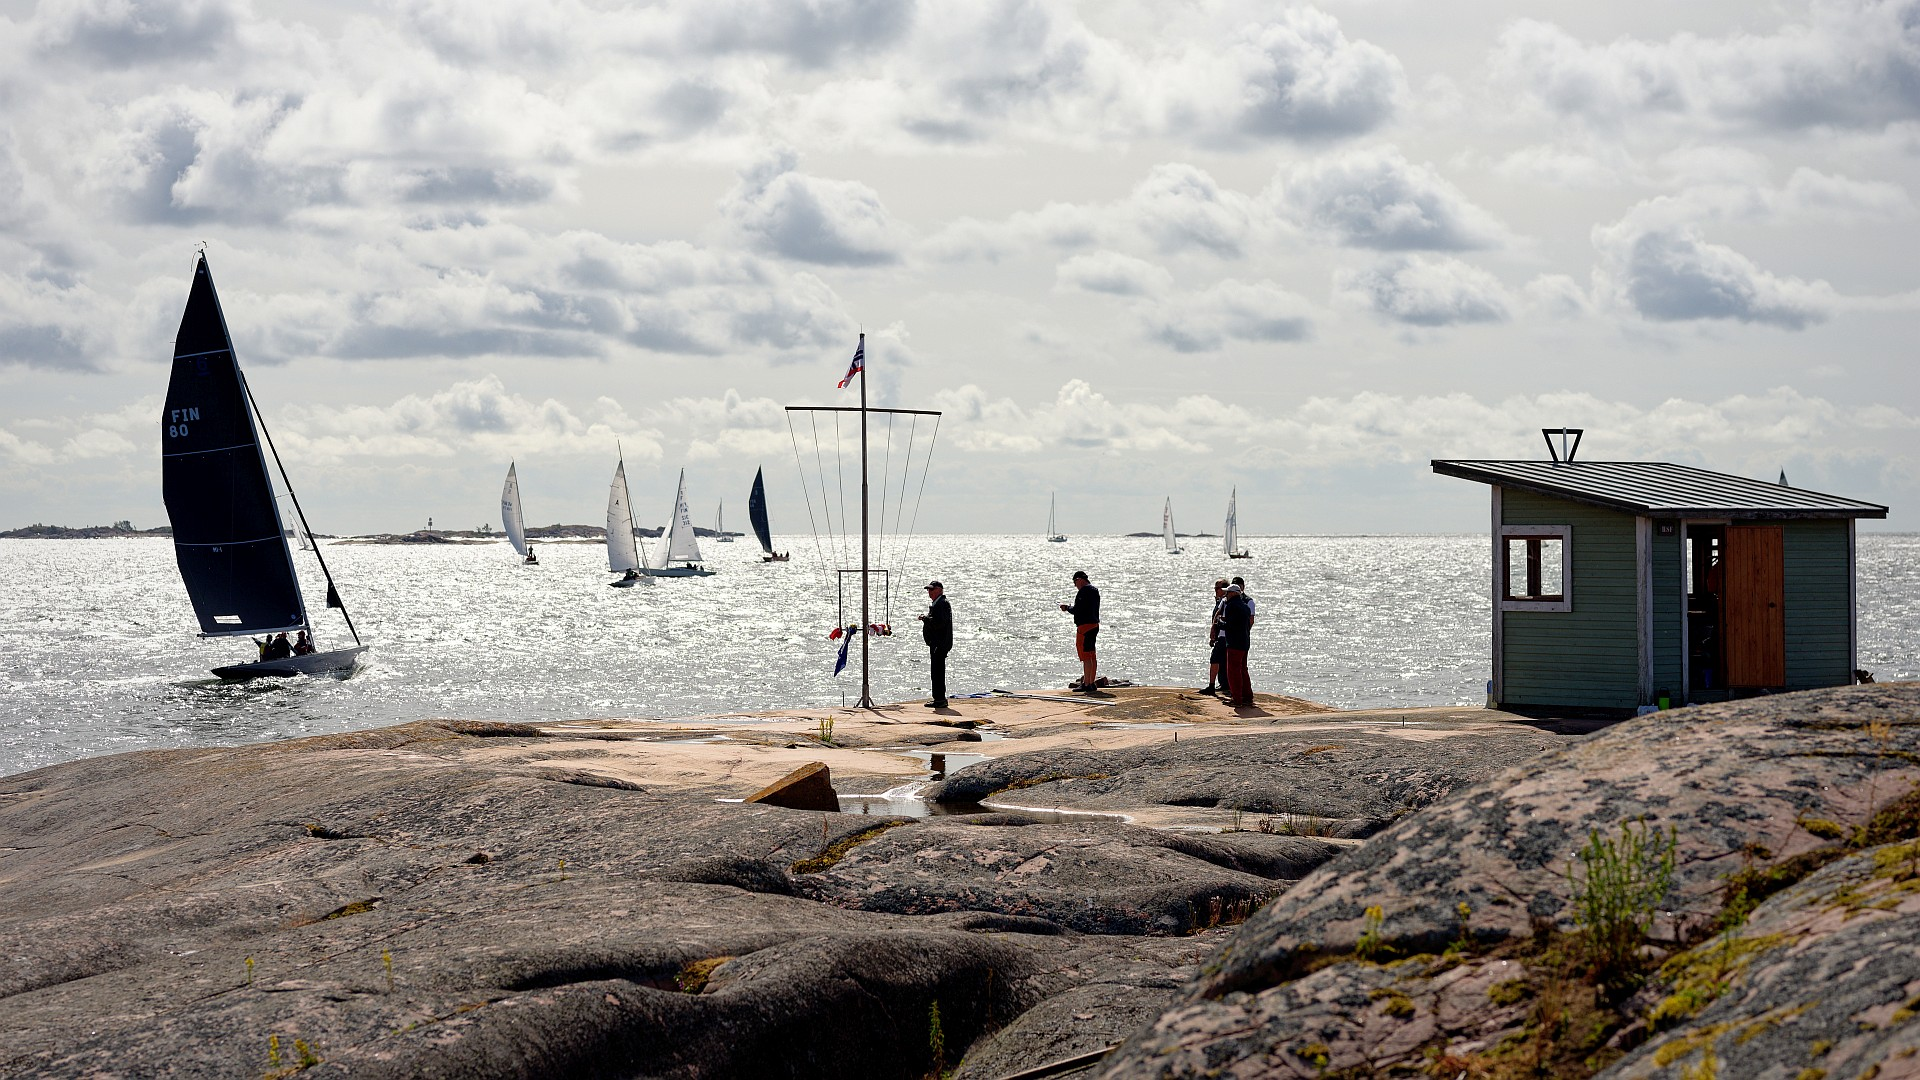 Hangö Classics is a regatta, organized by Hangö Segelförening HSF, that is in 2020 replacing the Hangö Regatta which would have been too big with regards to the Corona restrictions. The 8mR, 6mR, Int5mR, 5.5M, Dragon, A-boat, Hai and Nordic Folkboat are racing on a course from year 1932 with just some modifications. Photos are […]